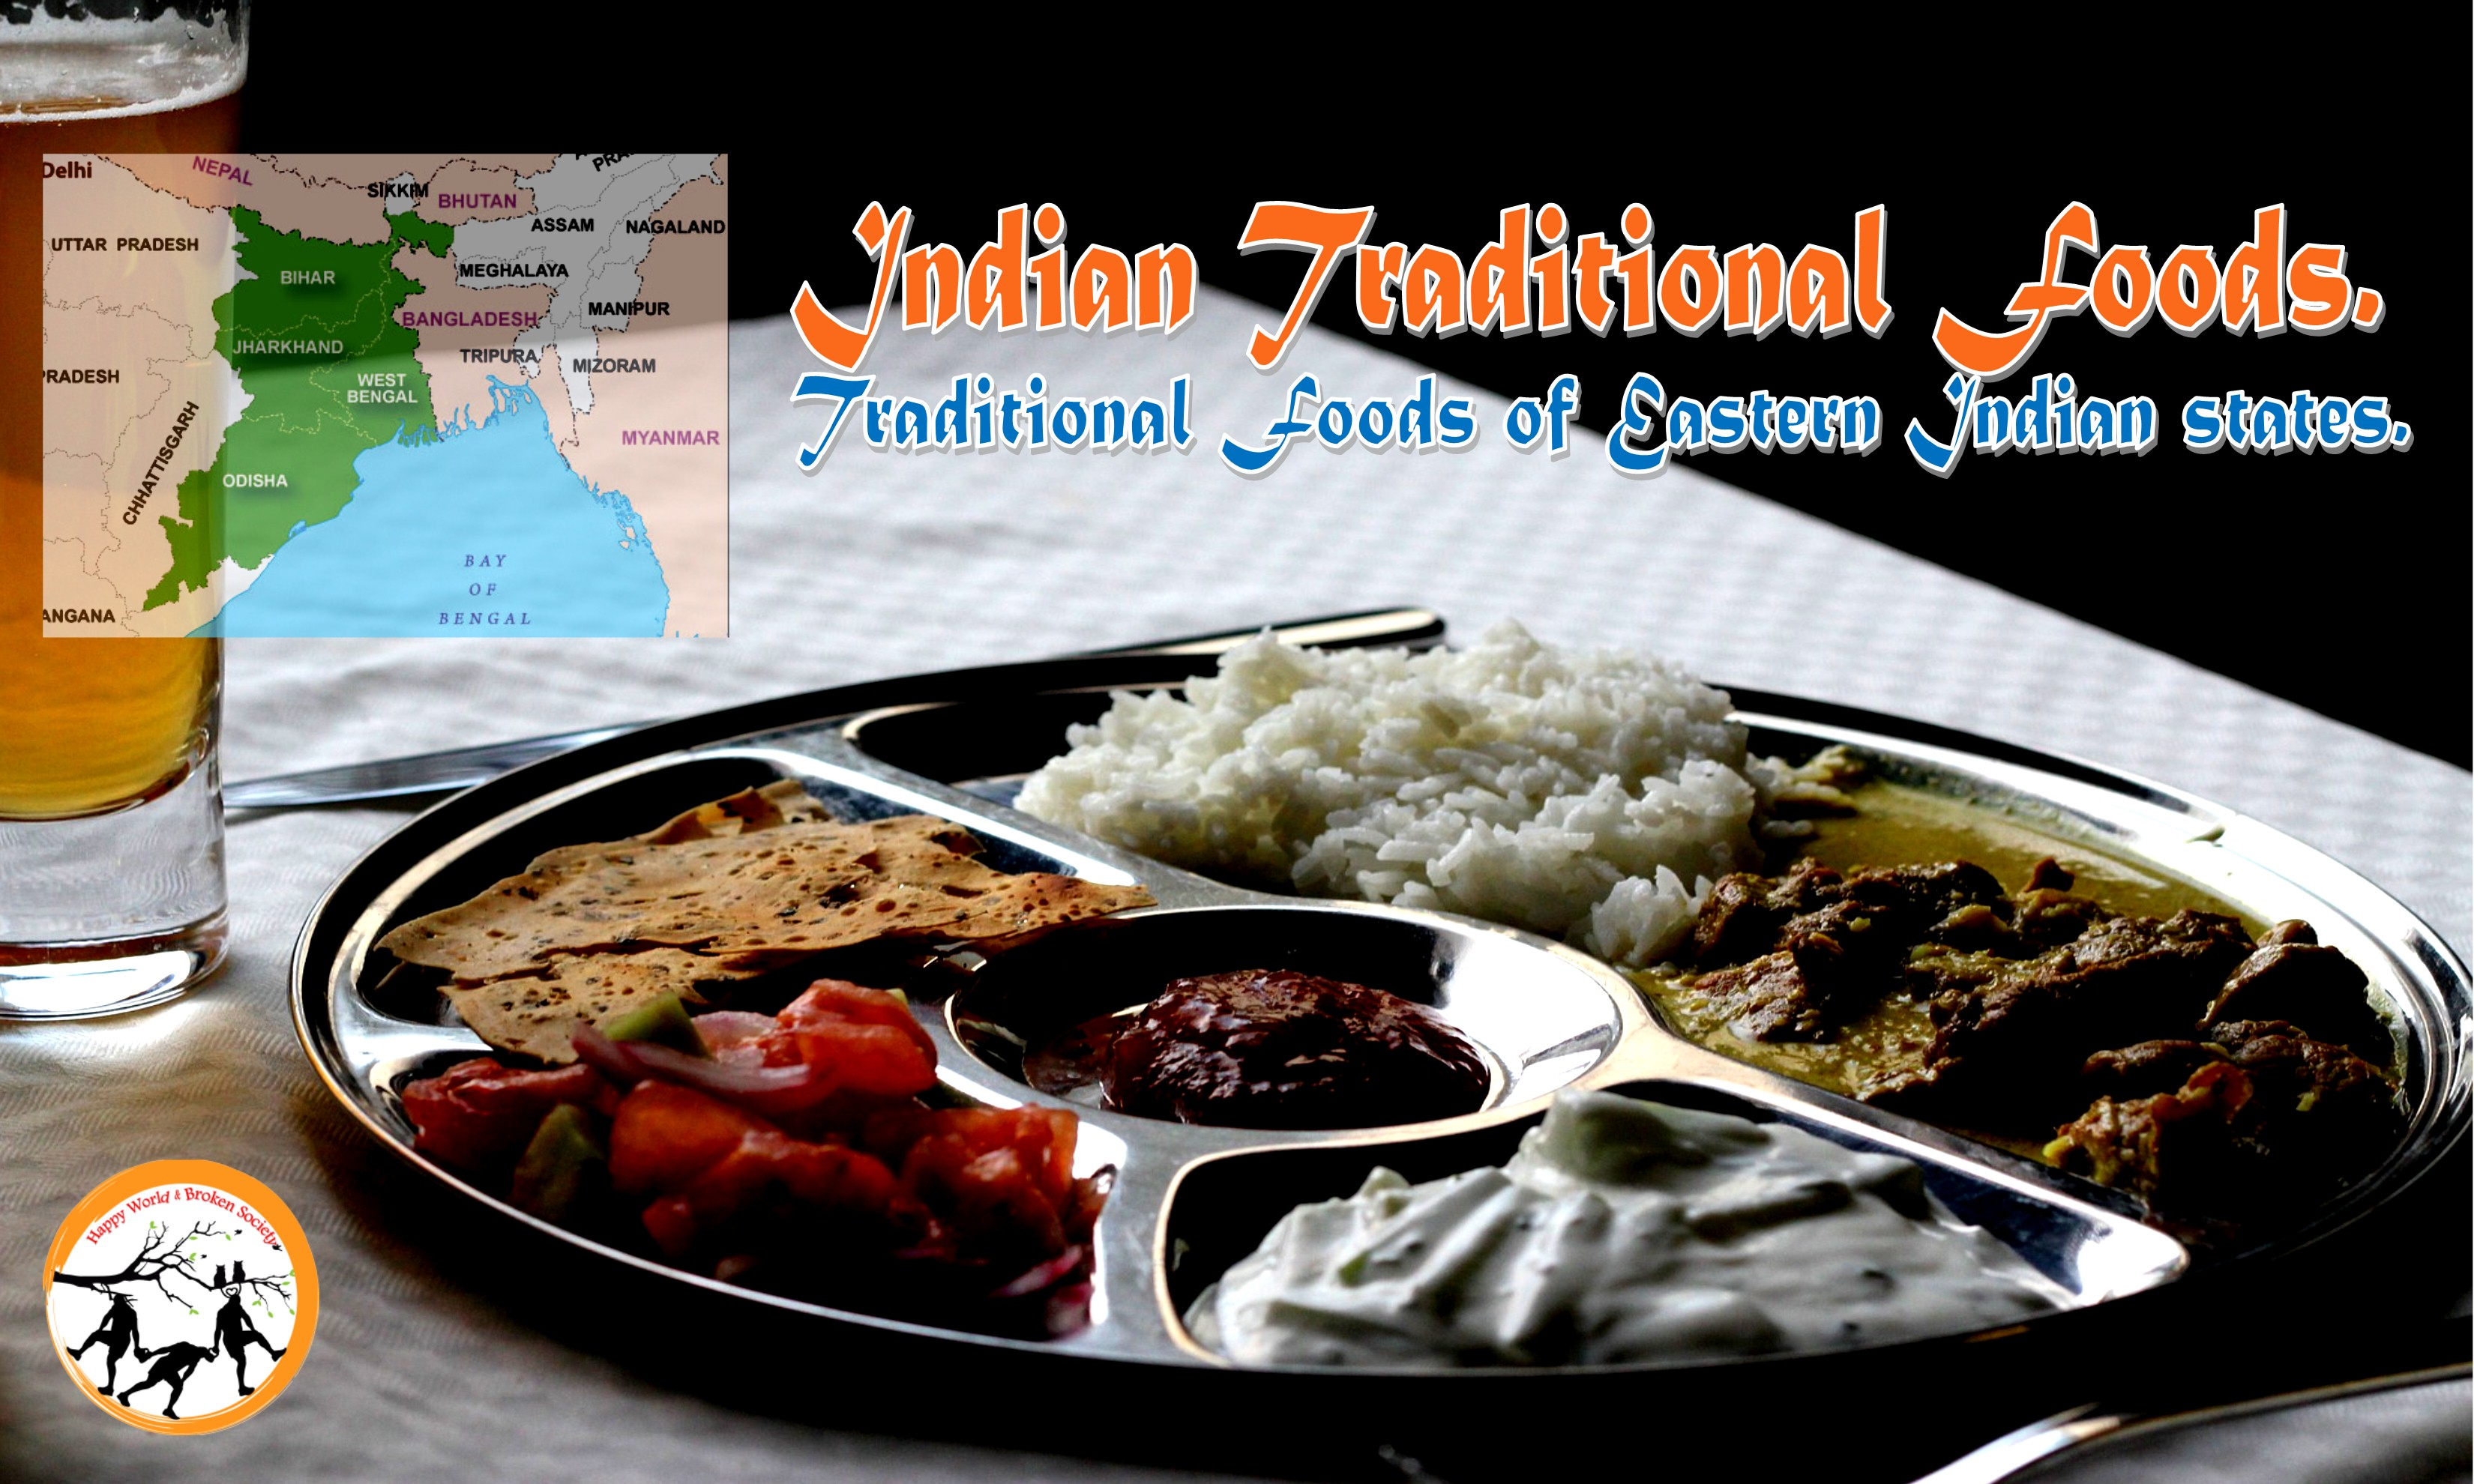 Indian Traditional Foods: Indigenous foods of Eastern Indian